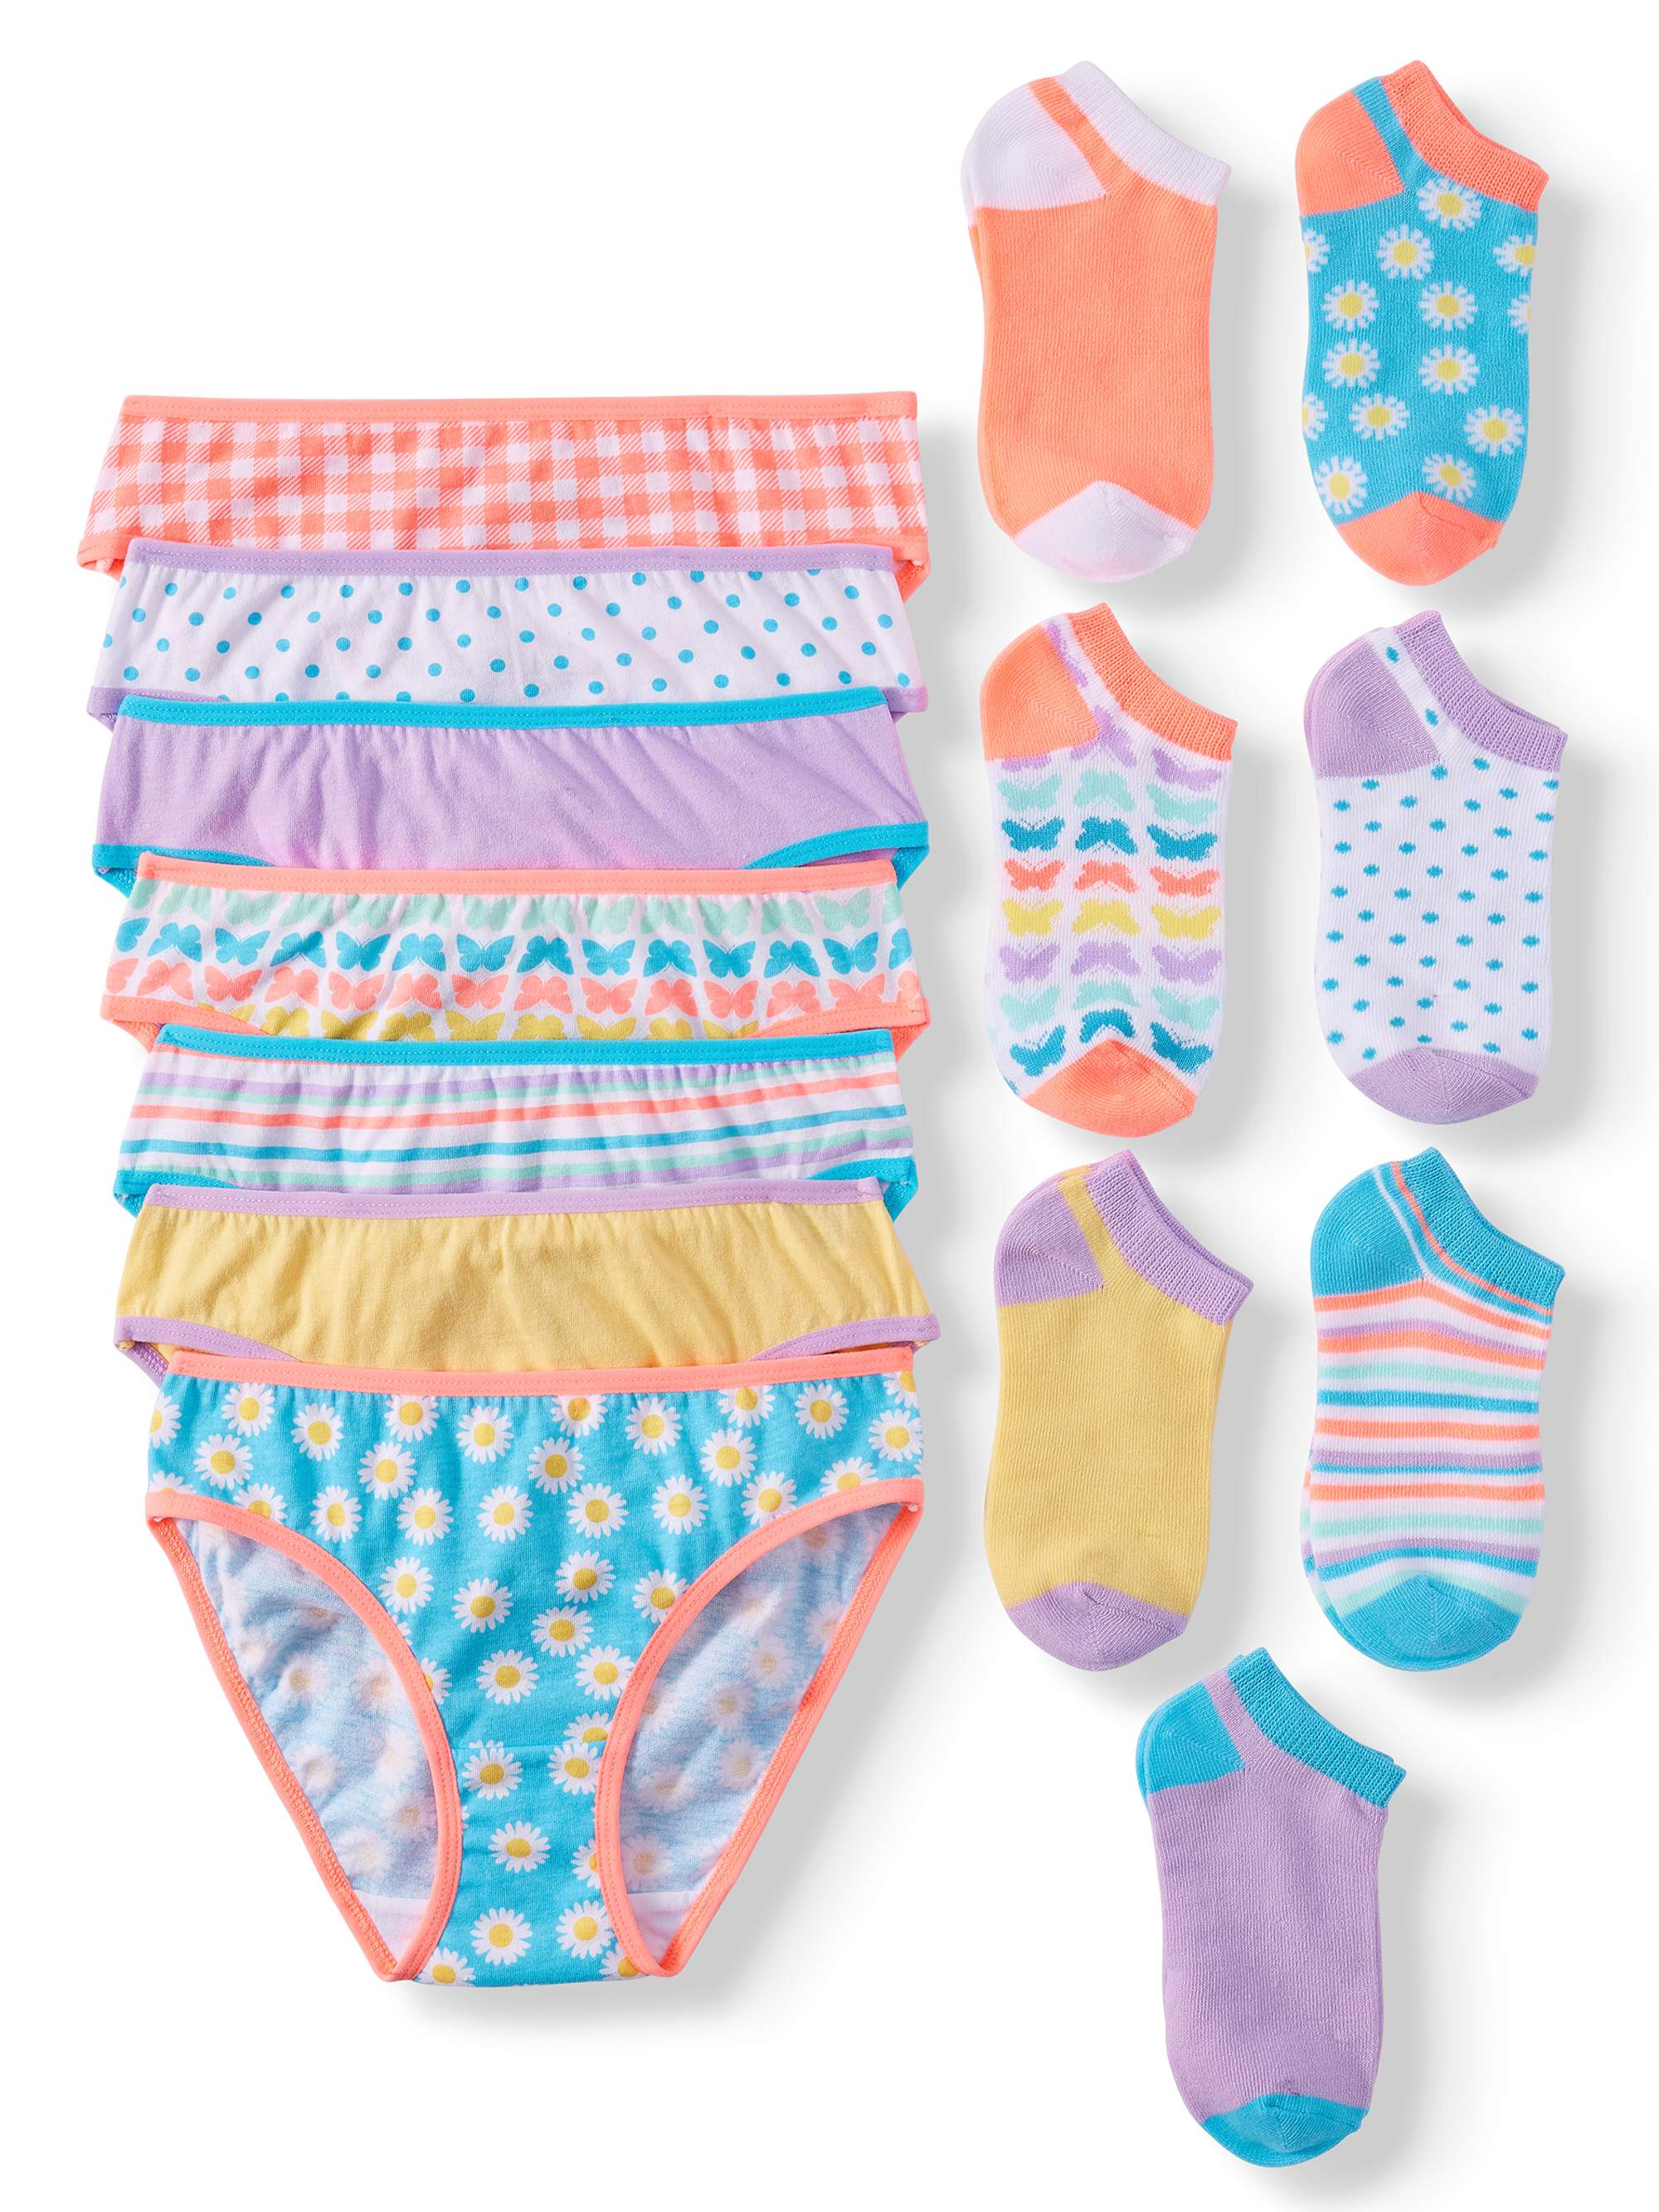 f778f5863294 Wonder Nation - Wonder Nation Girls' 100% Cotton Bikini Panty and Socks, 14- Pack - Walmart.com